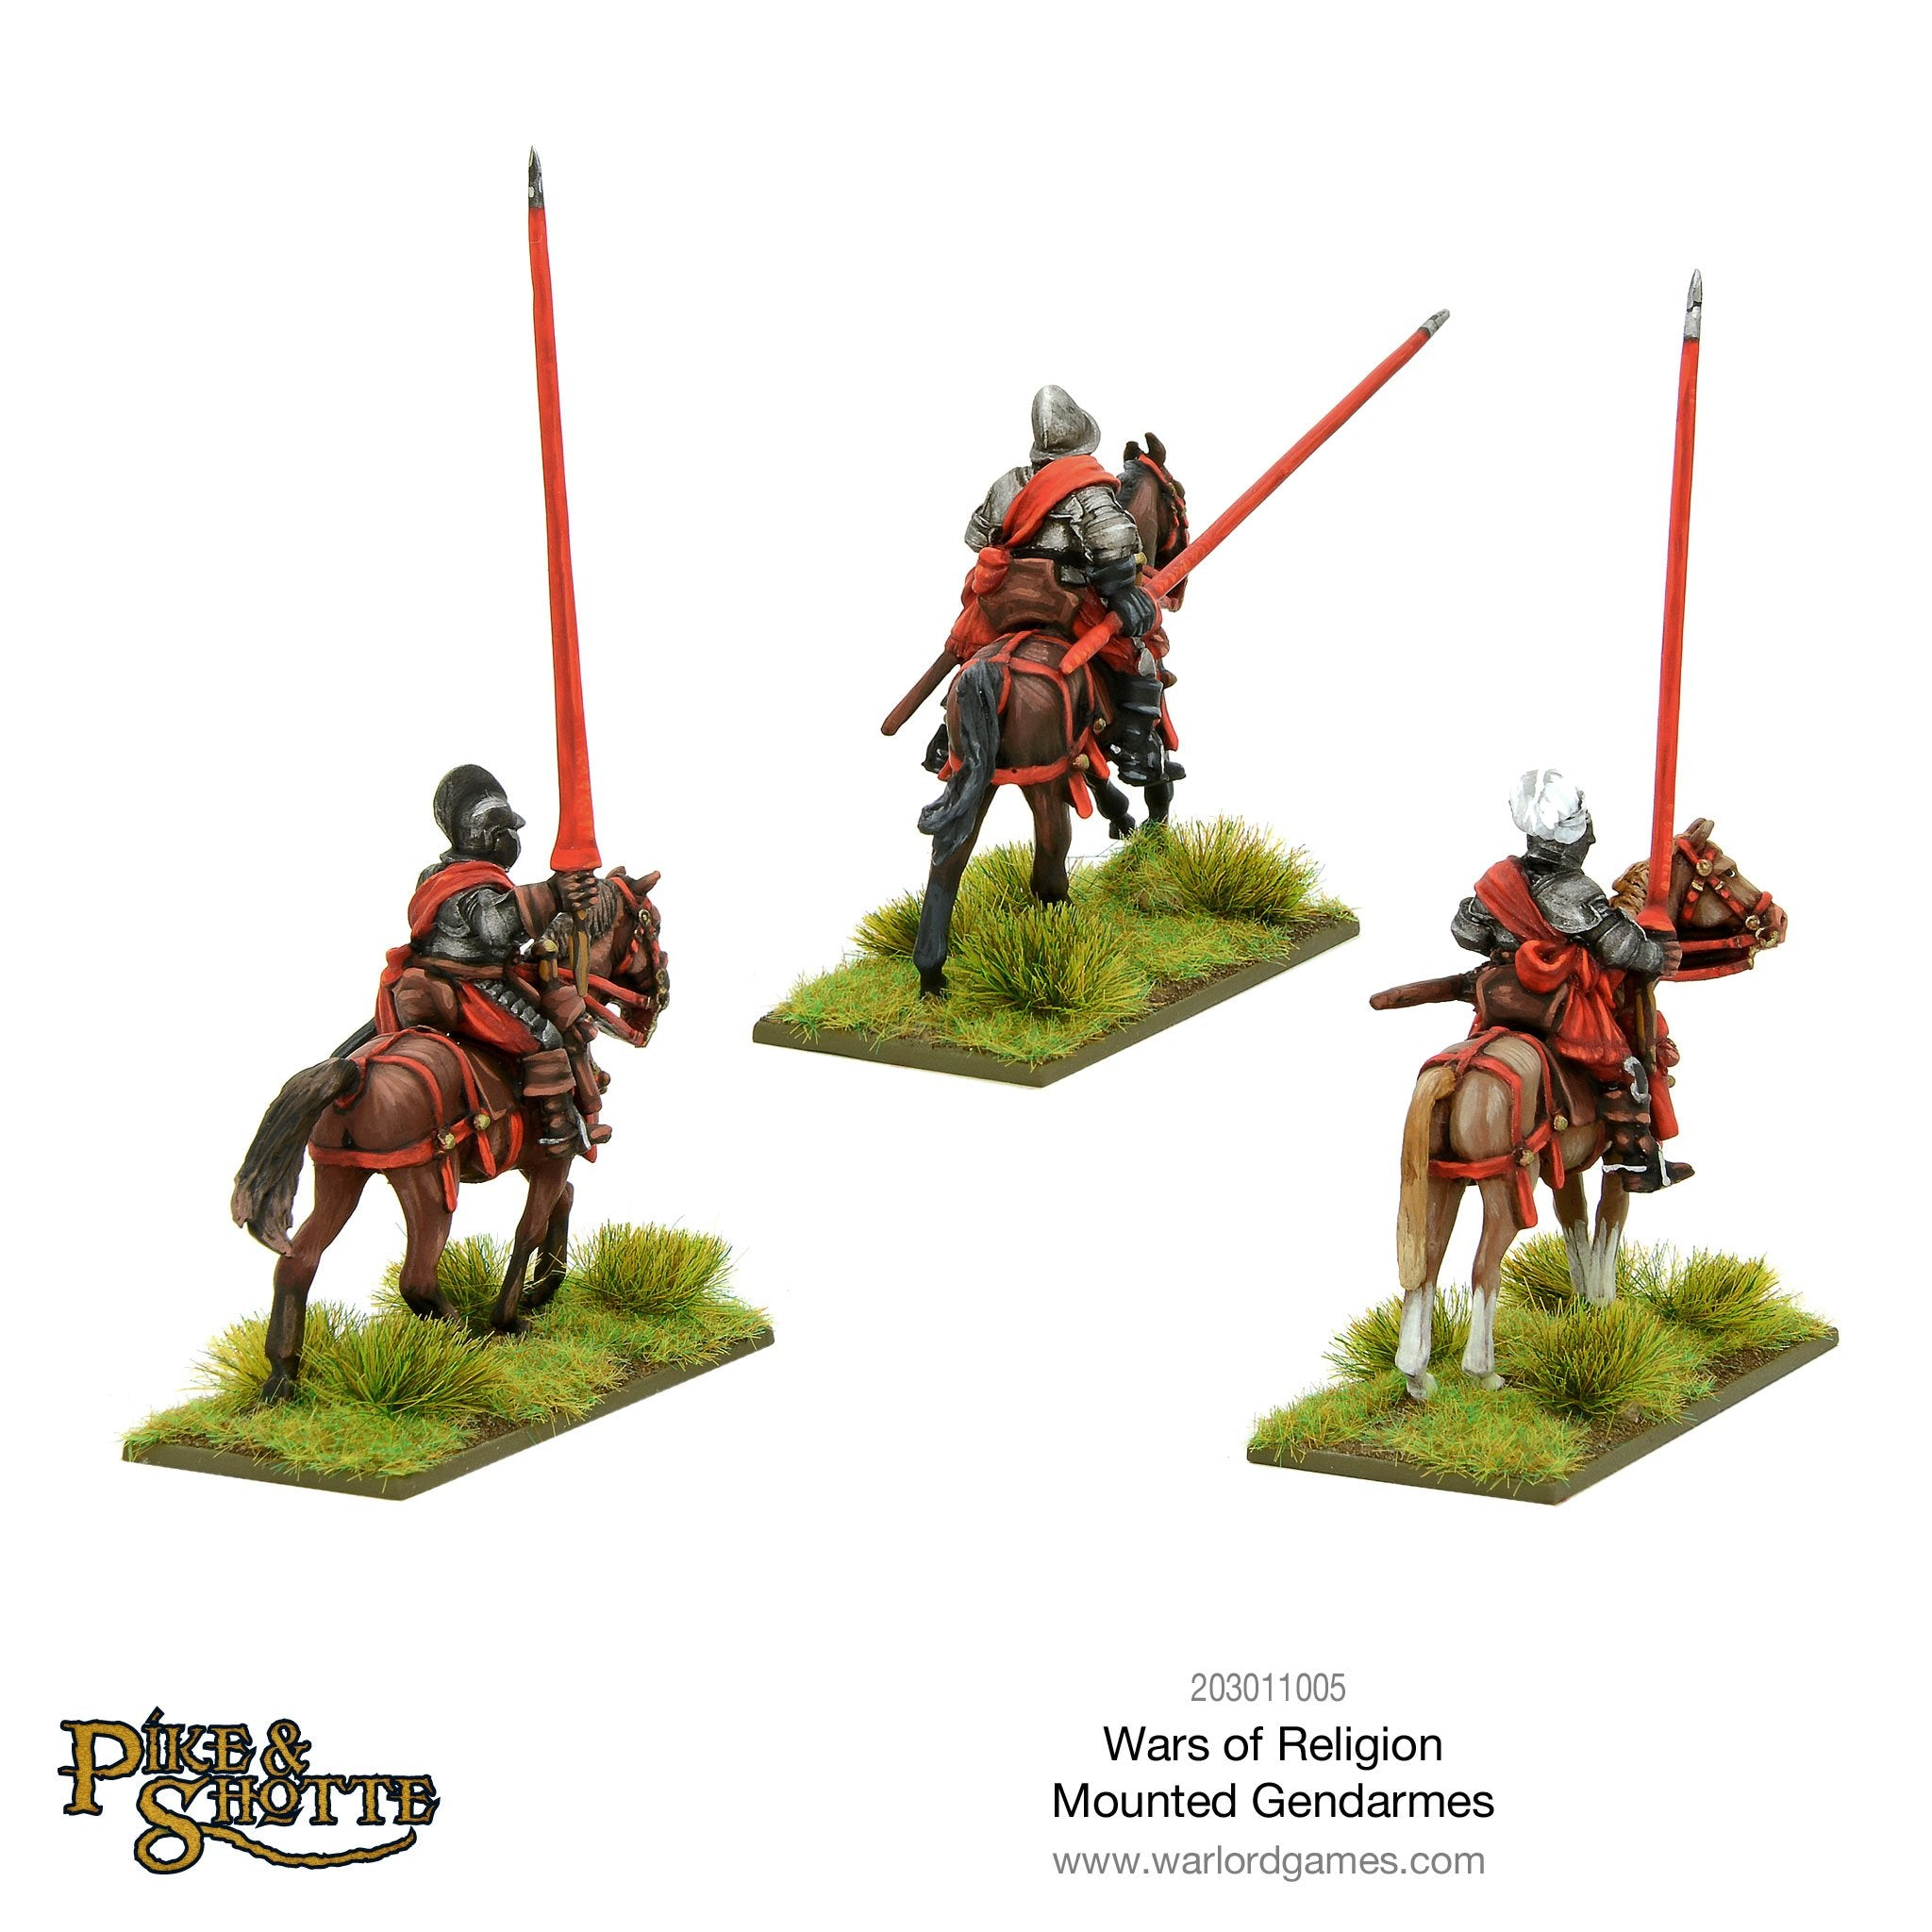 Wars of Religion Mounted Gendarmes